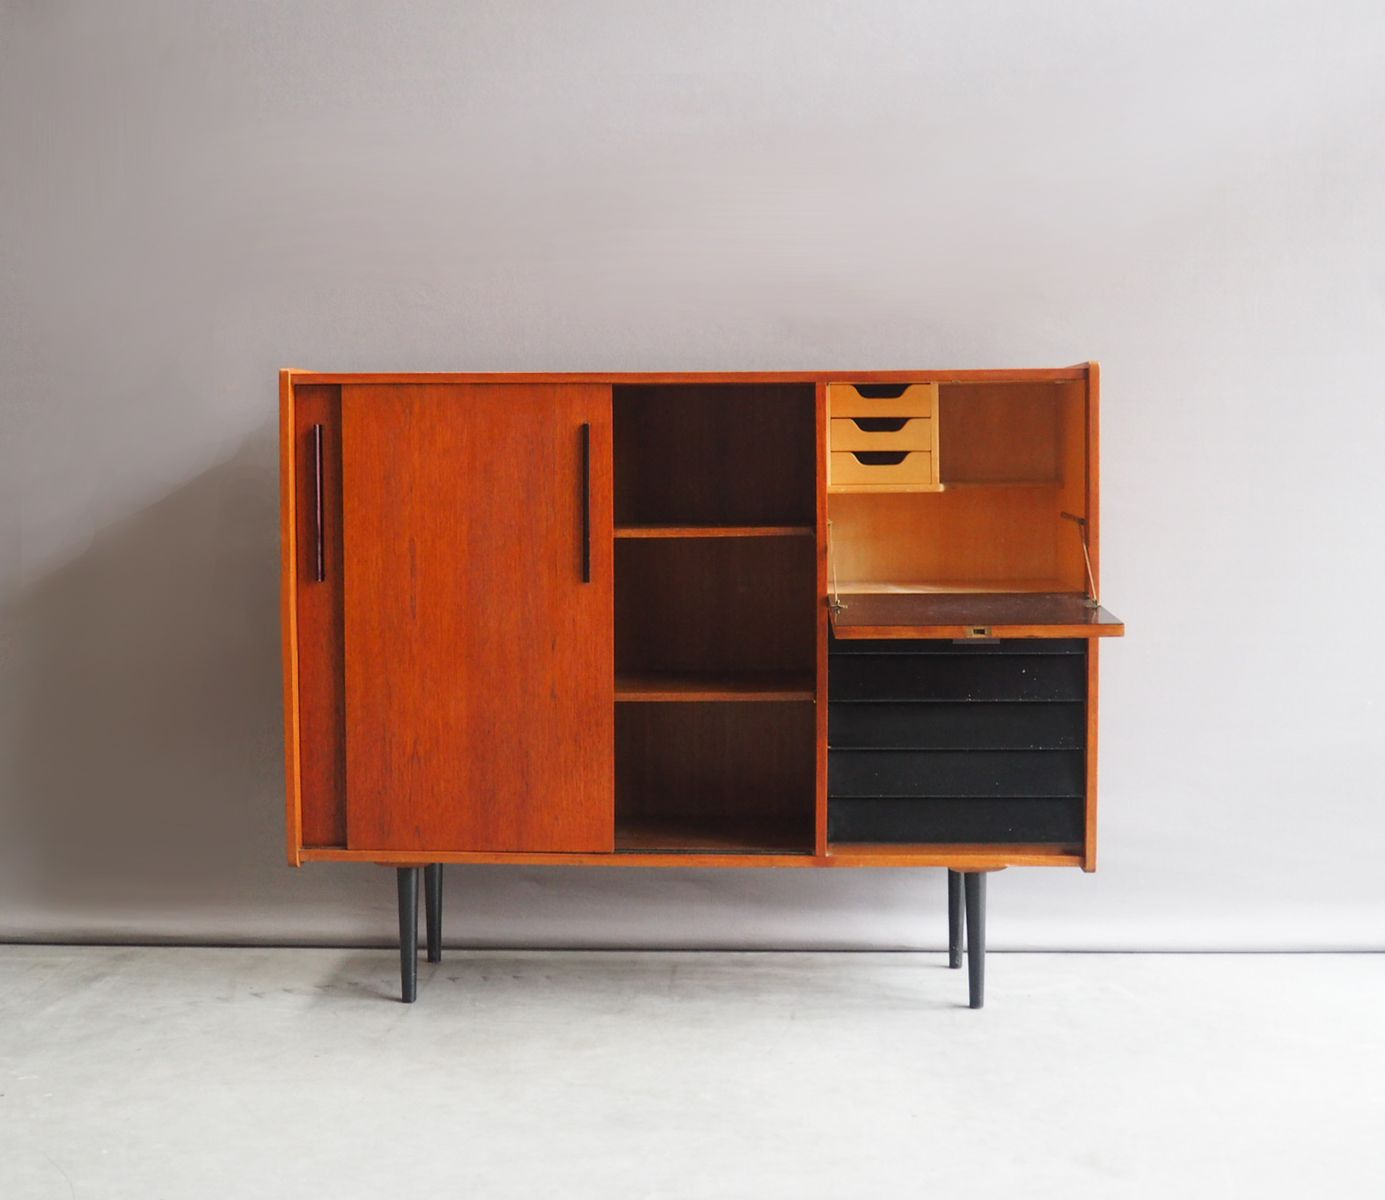 niederl ndisches highboard mit schiebet ren von b sprij 1960er bei pamono kaufen. Black Bedroom Furniture Sets. Home Design Ideas